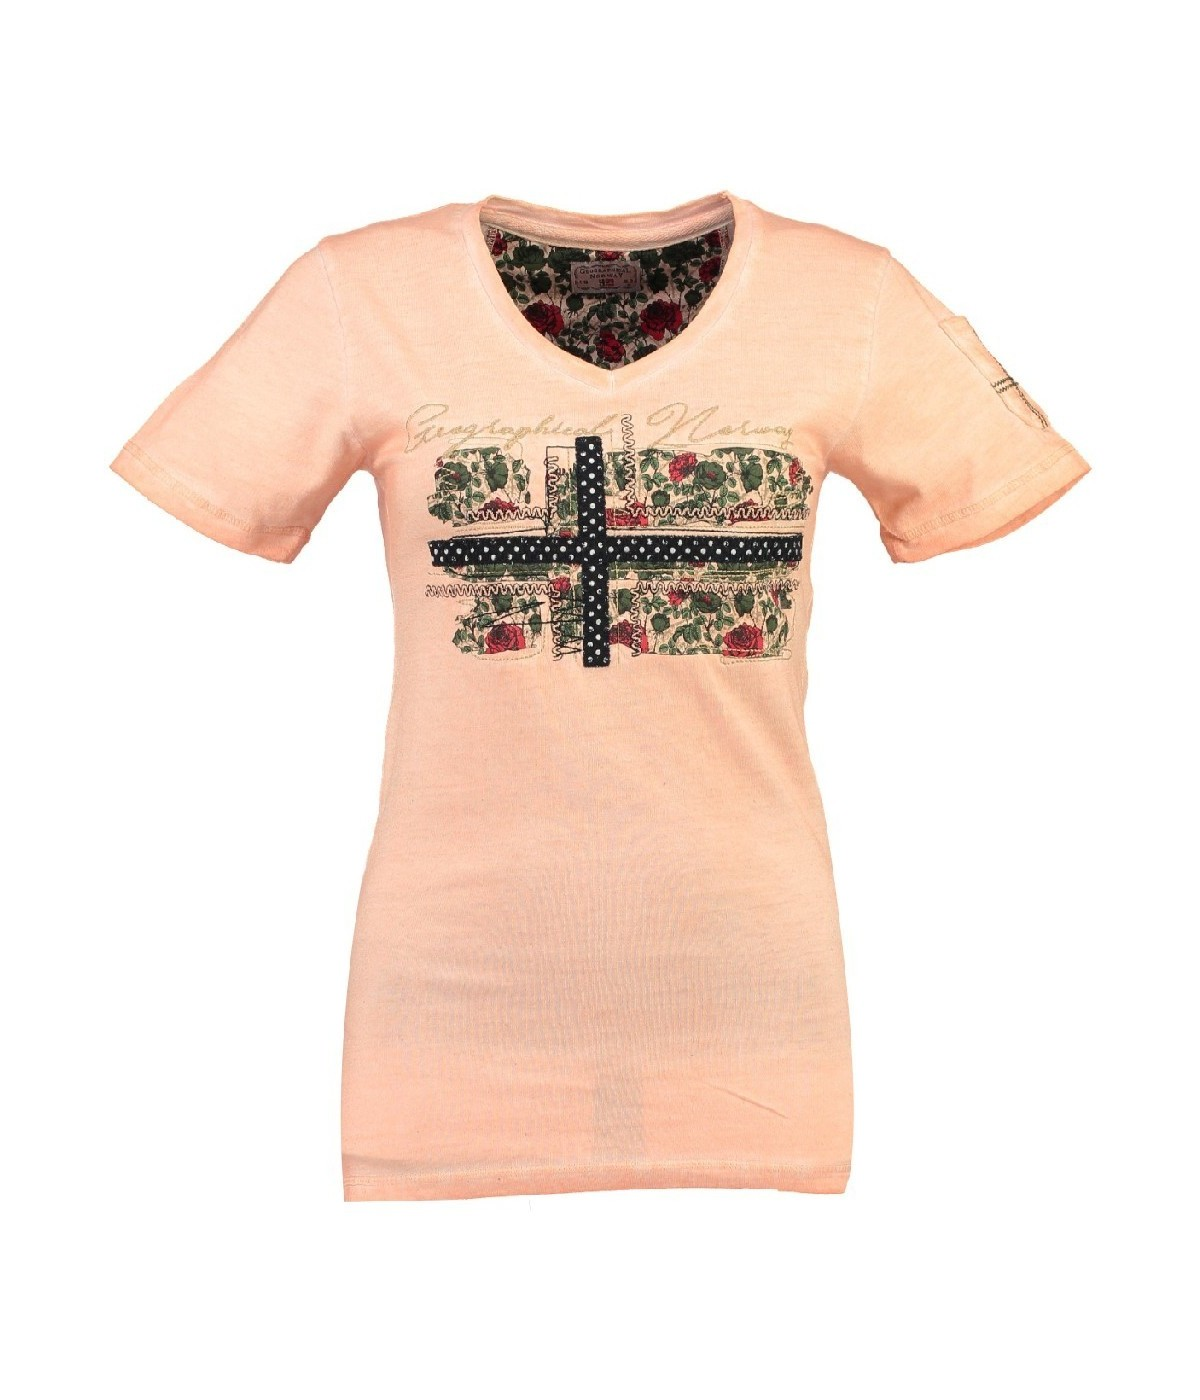 T-shirt Femme Geographical Norway Jbeautà© Corail